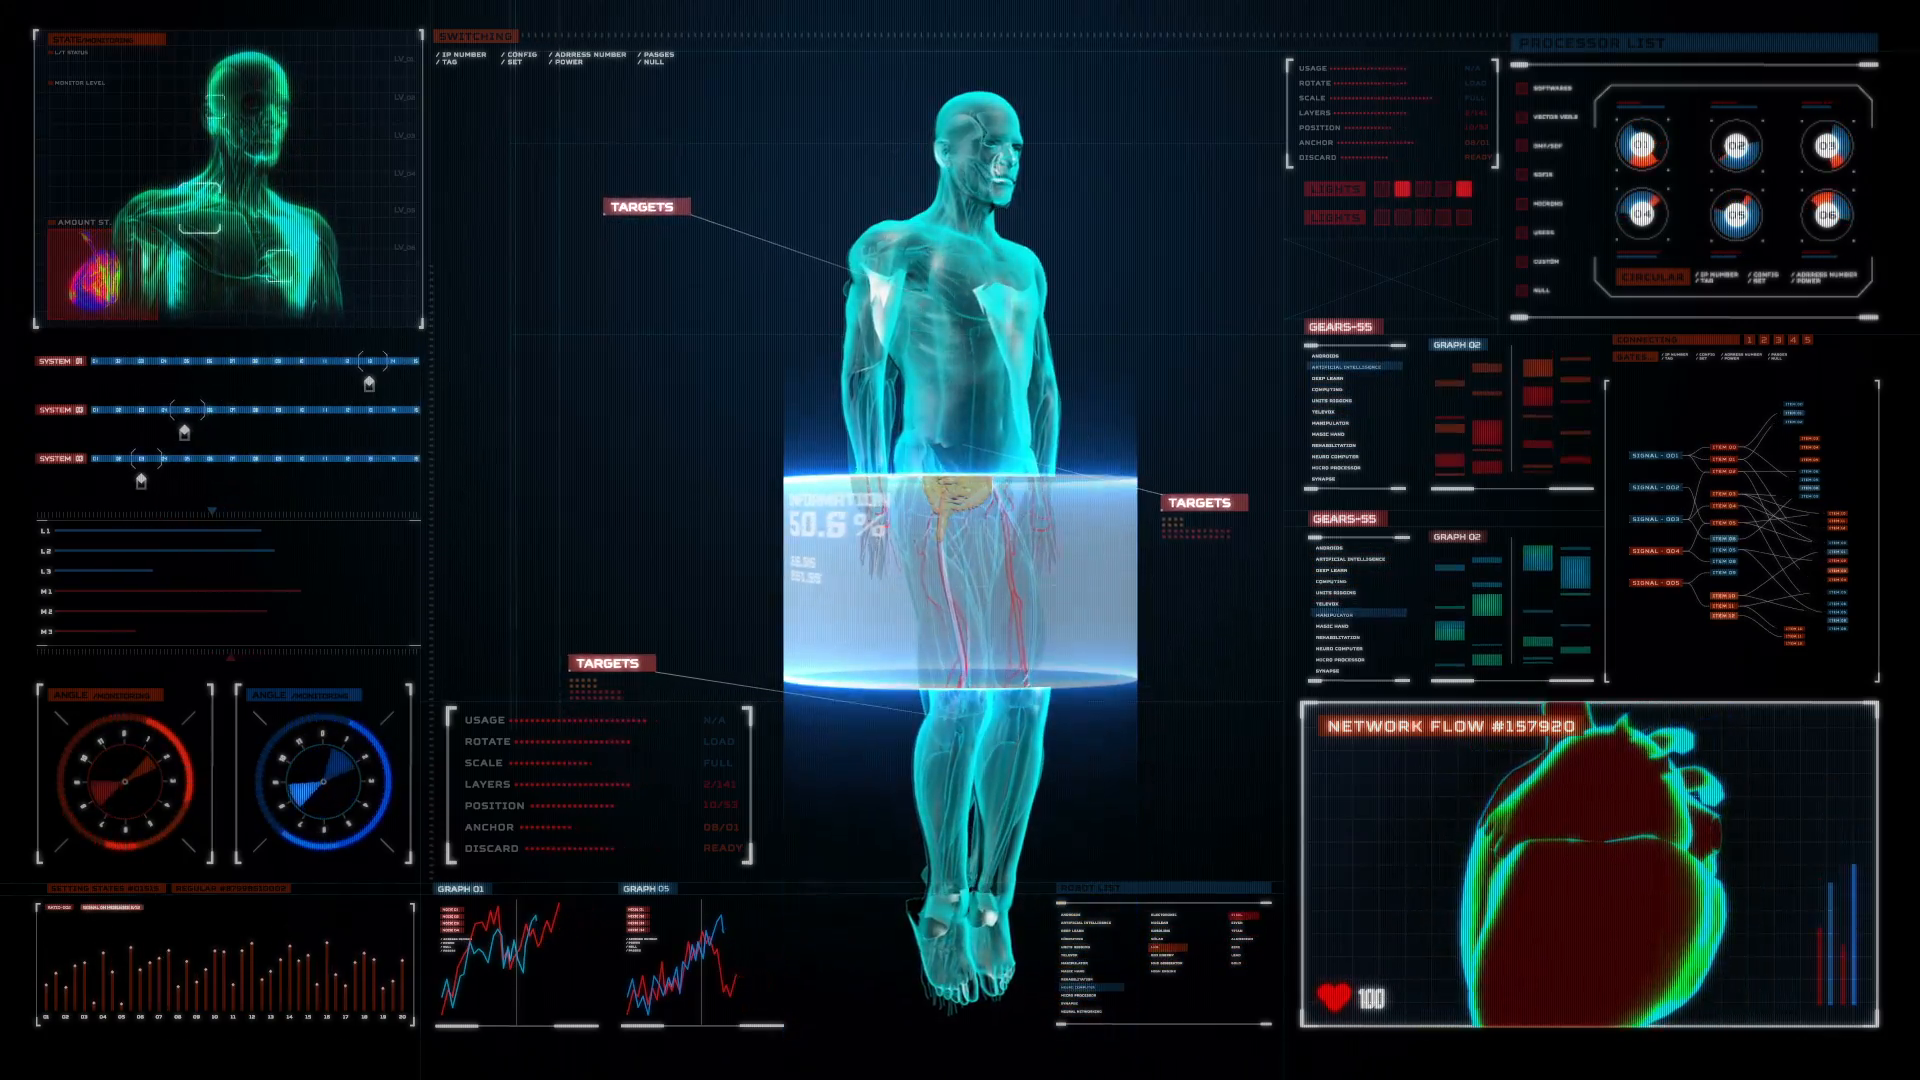 human-skeletal-and-blood-vascular-system-inside-scanning-human-body-in-digital-medical-display-user-interface_sodxfqjf__F0009